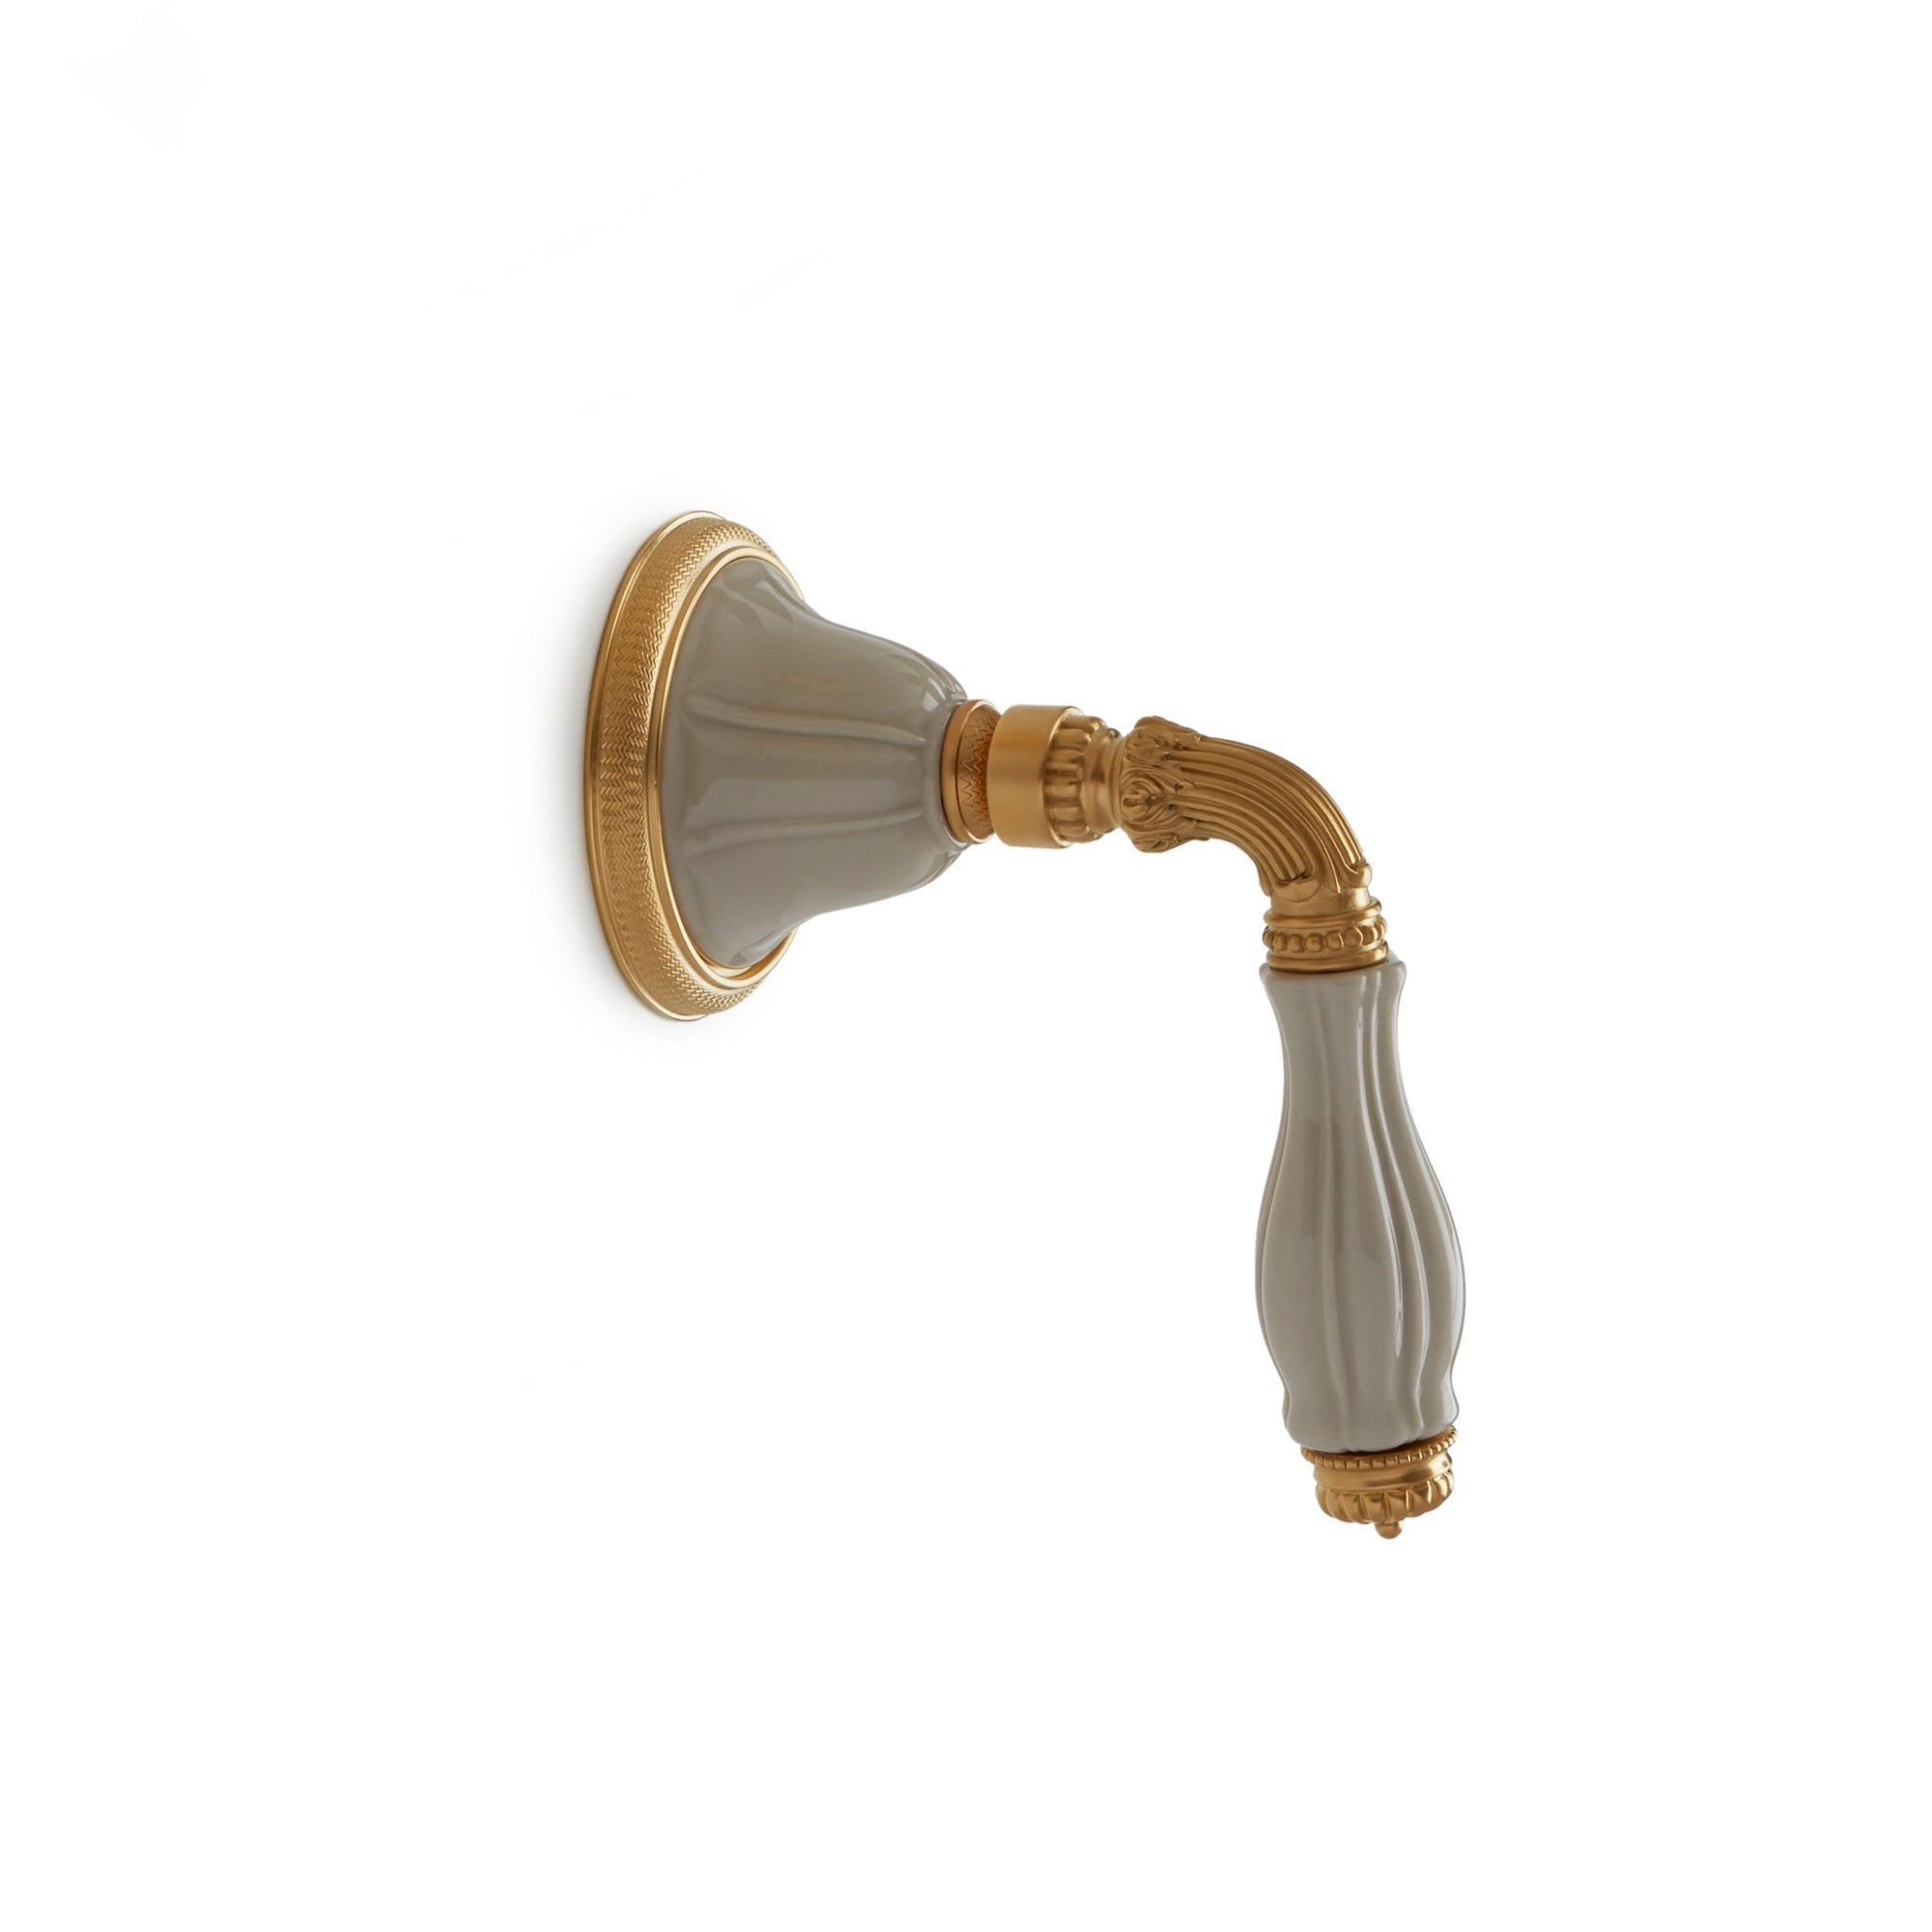 1029LV-ESC-03SD-GP Sherle Wagner International Scalloped Ceramic Fluted Lever Volume Control and Diverter Trim in Gold Plate metal finish with Sand Glaze inserts